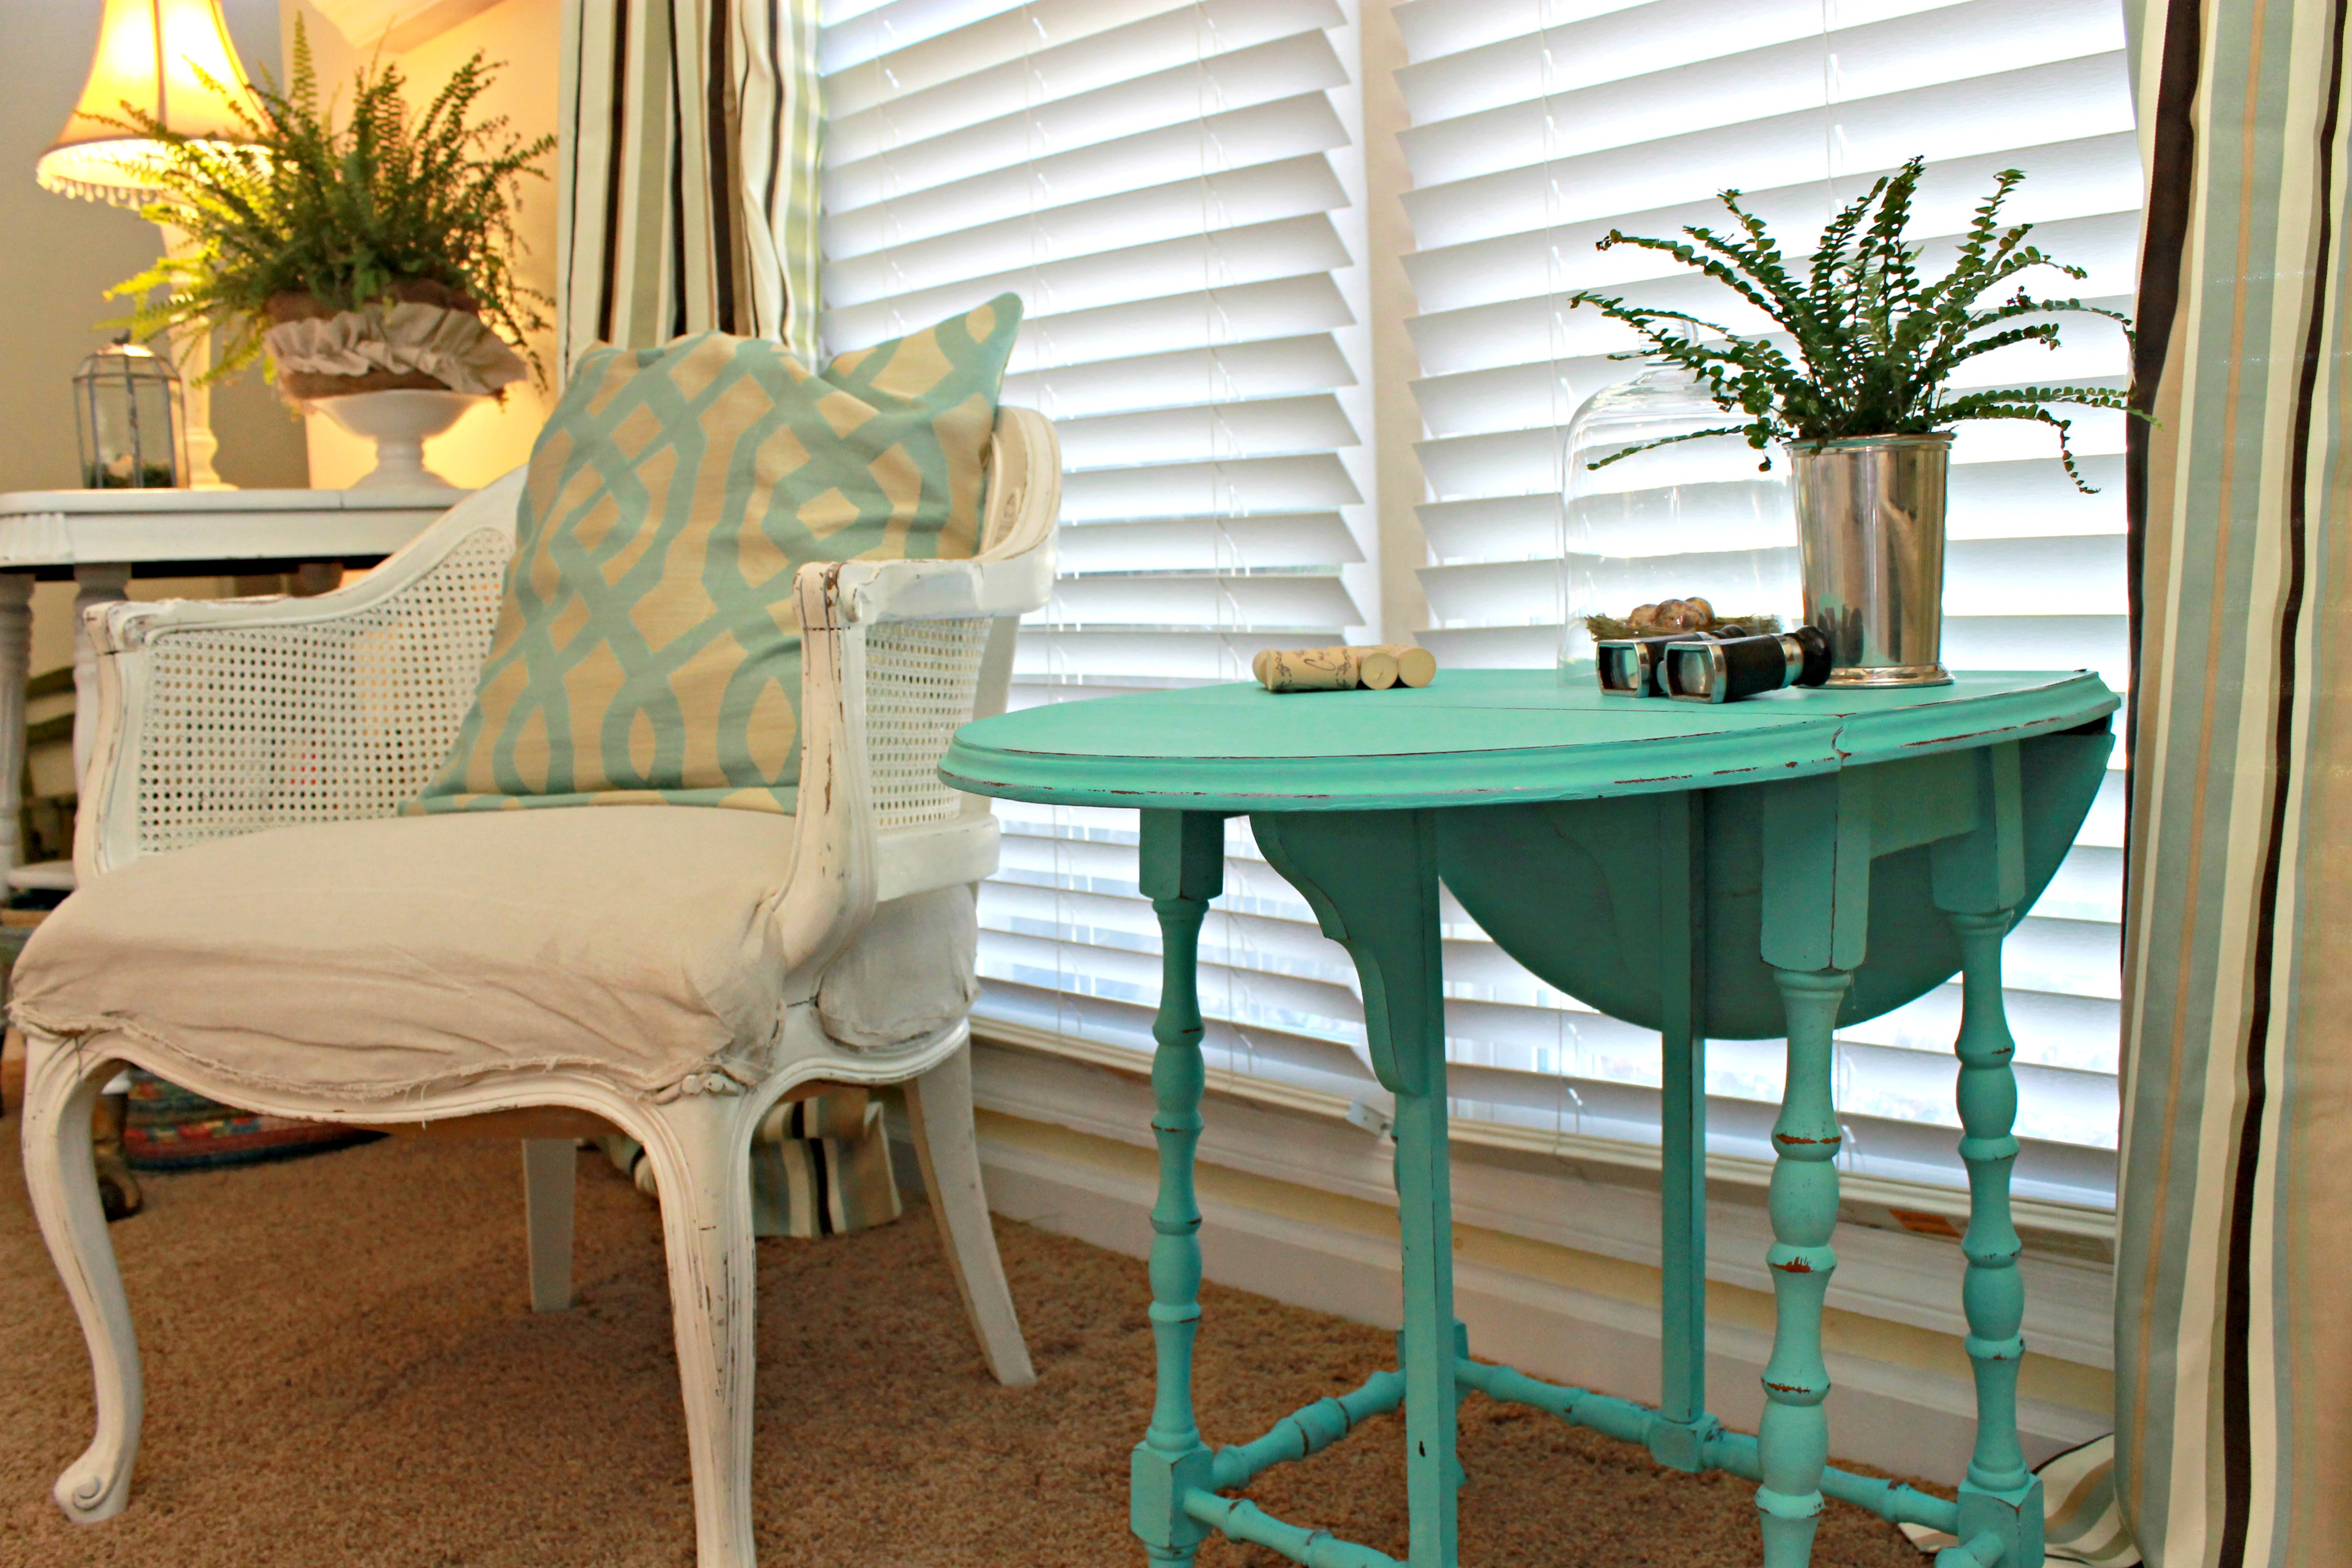 Painting Side Table Ideas Savvy Southern Style My Favorite Room Mom 4 Real